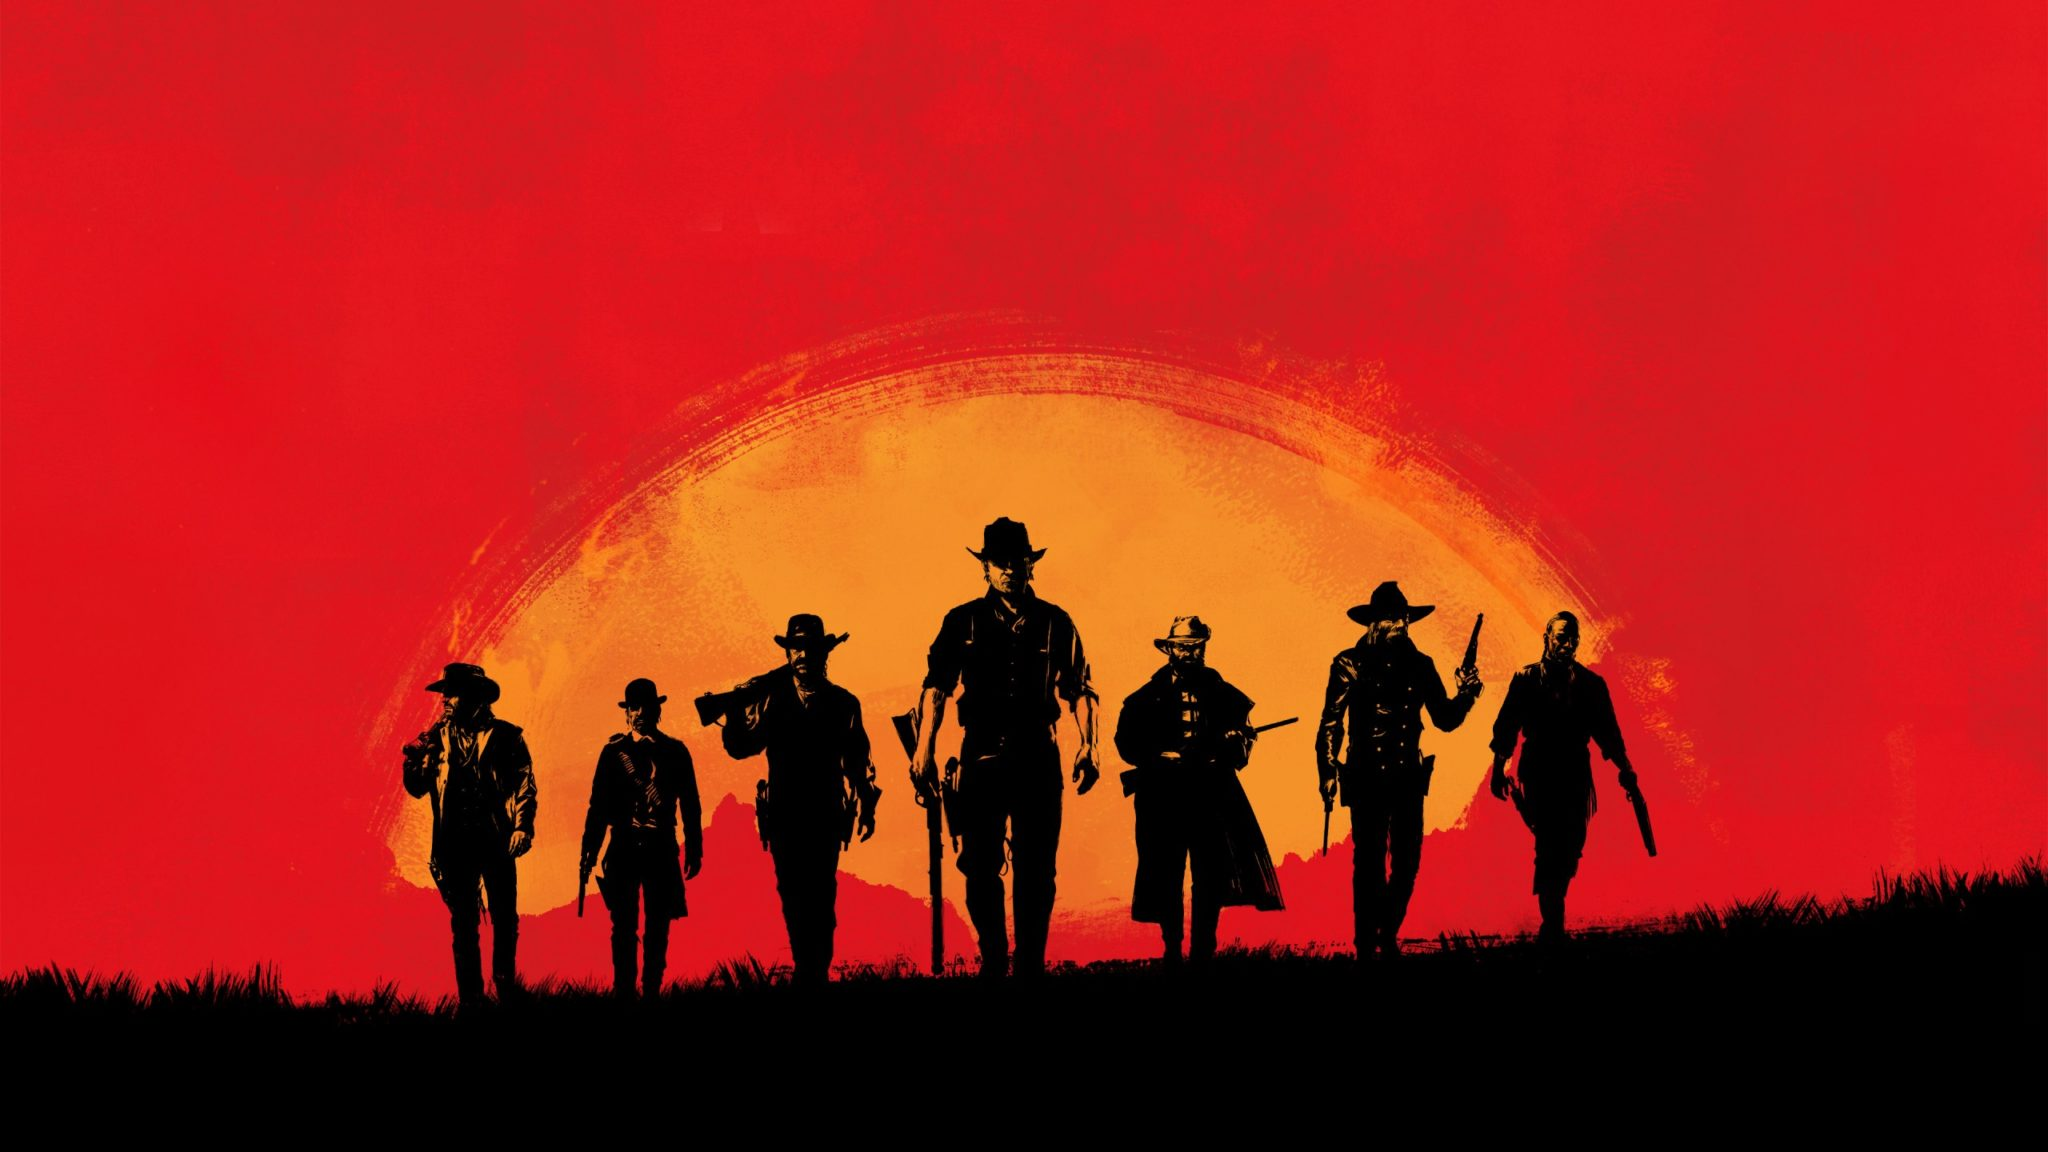 red dead redemption 2 geforce